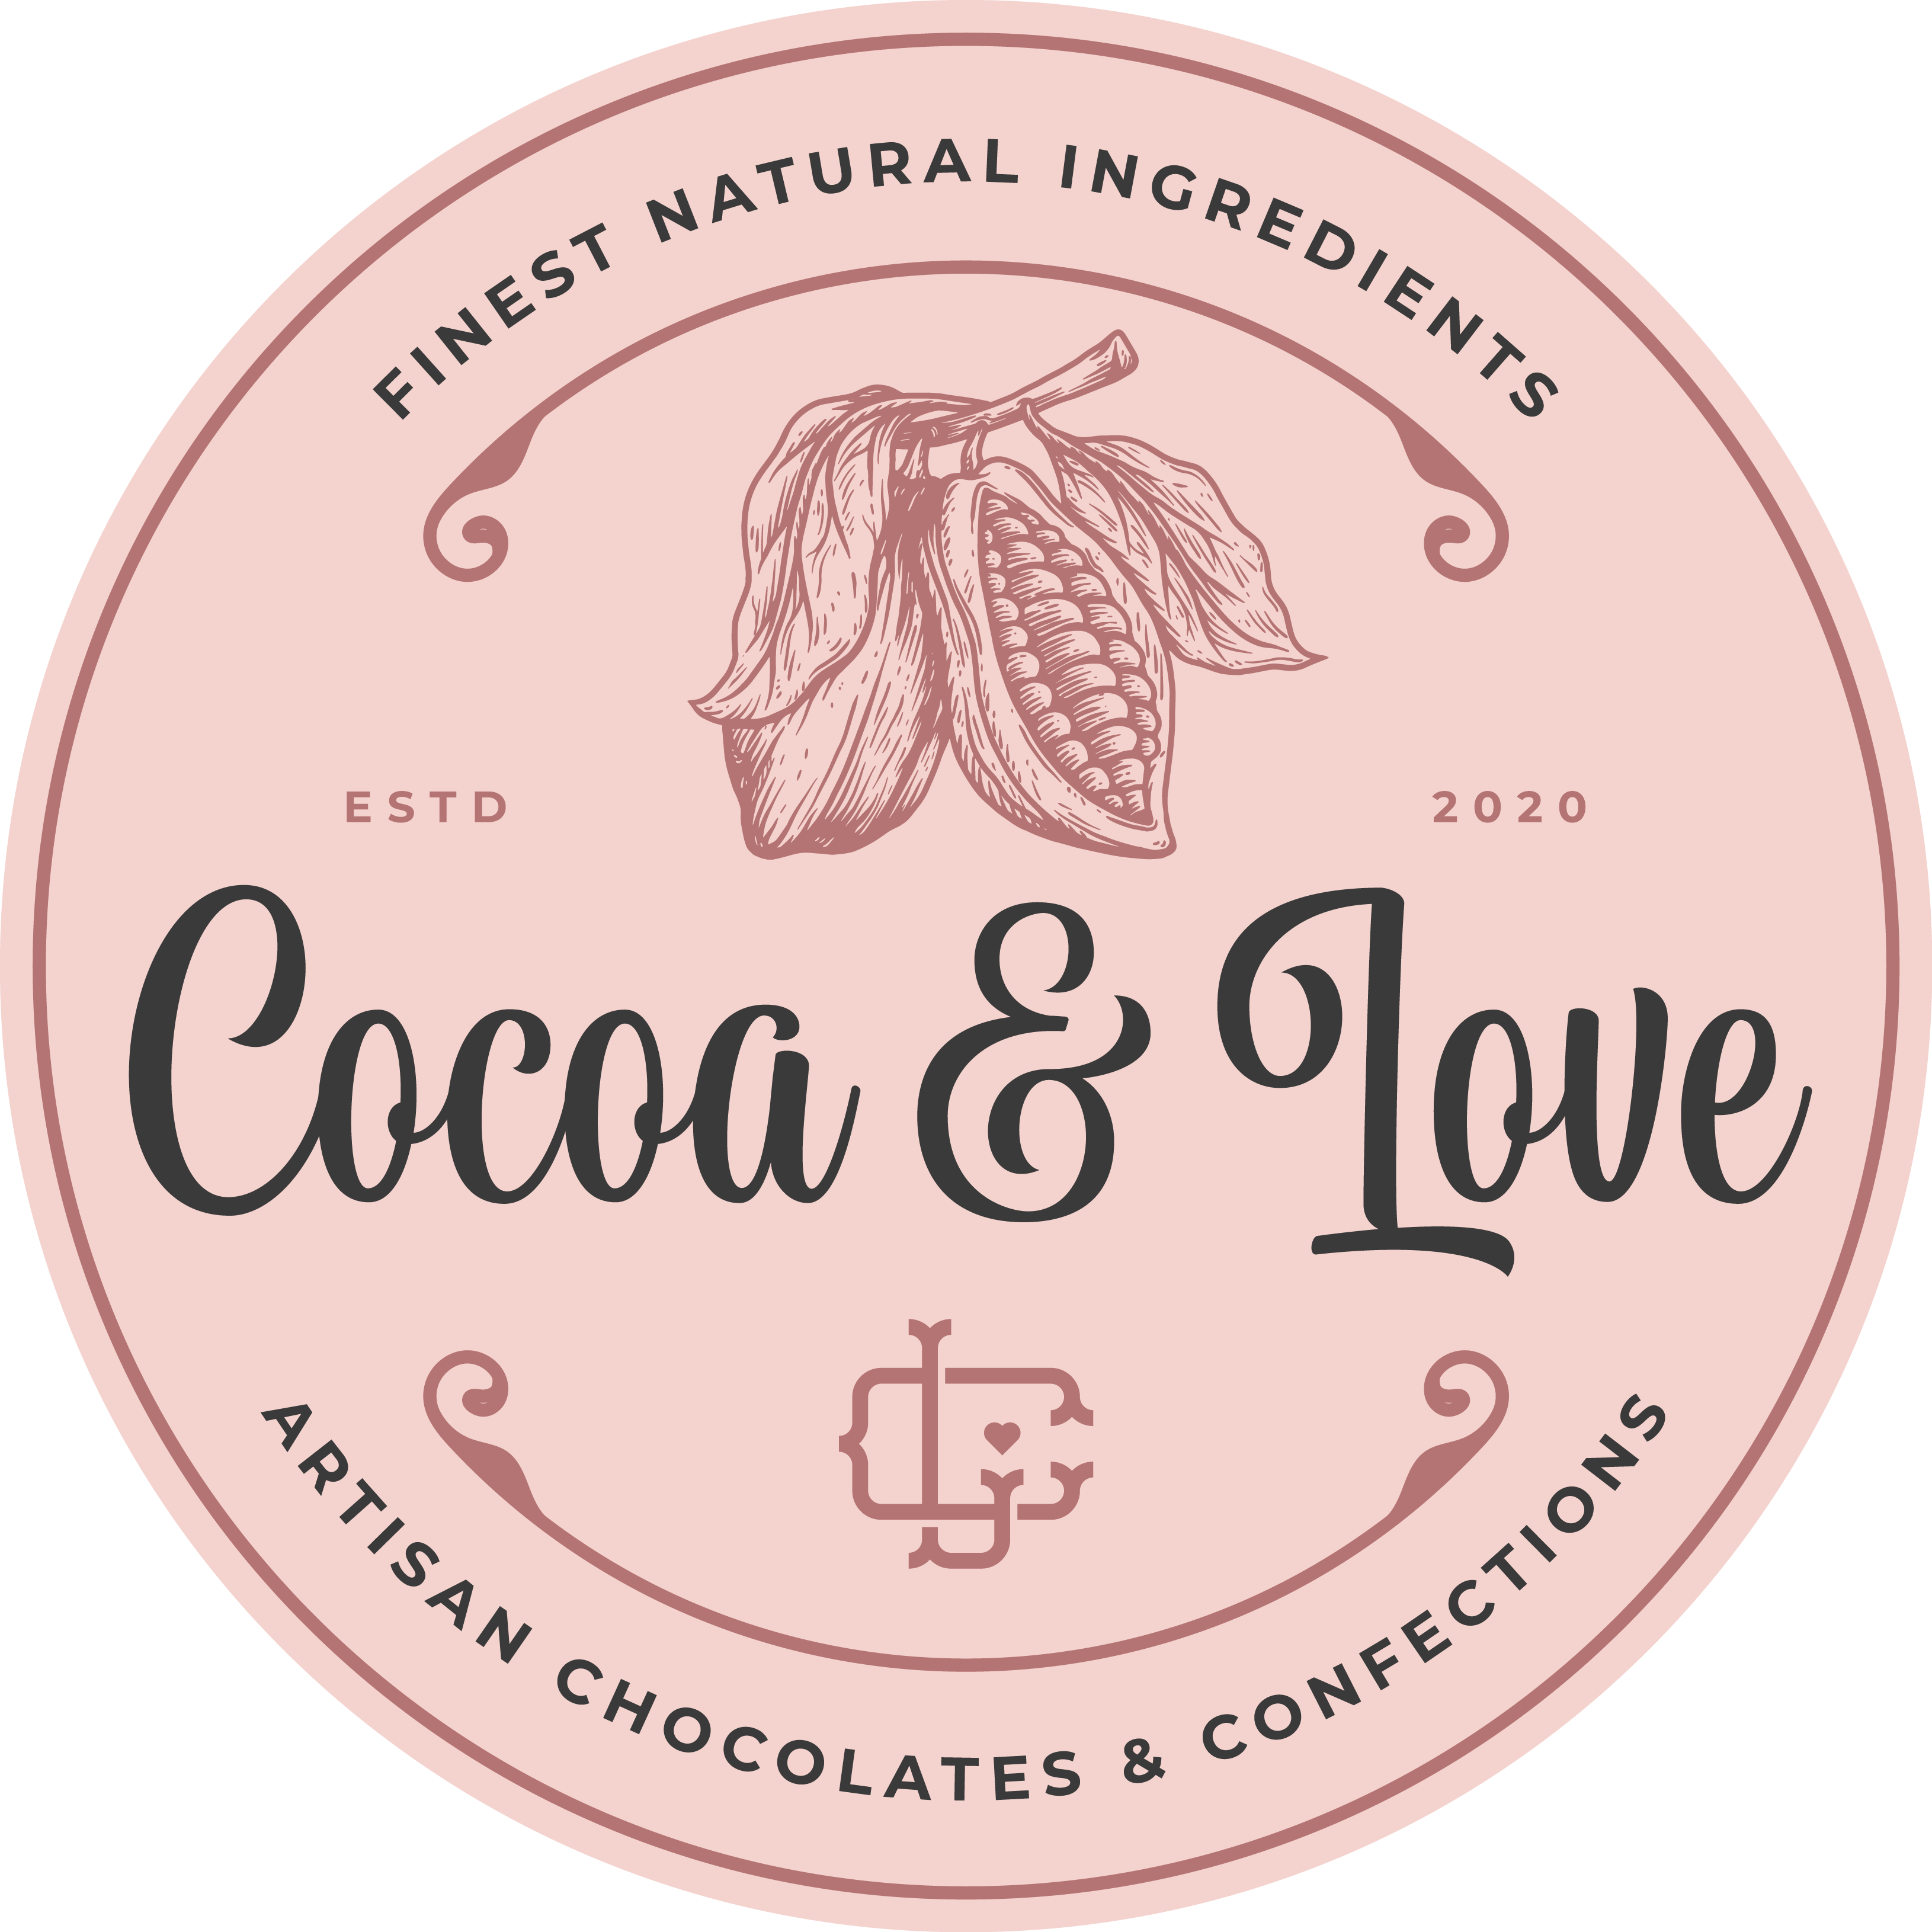 Powerful Logo for artisan Chocolate & Confections Production wanted